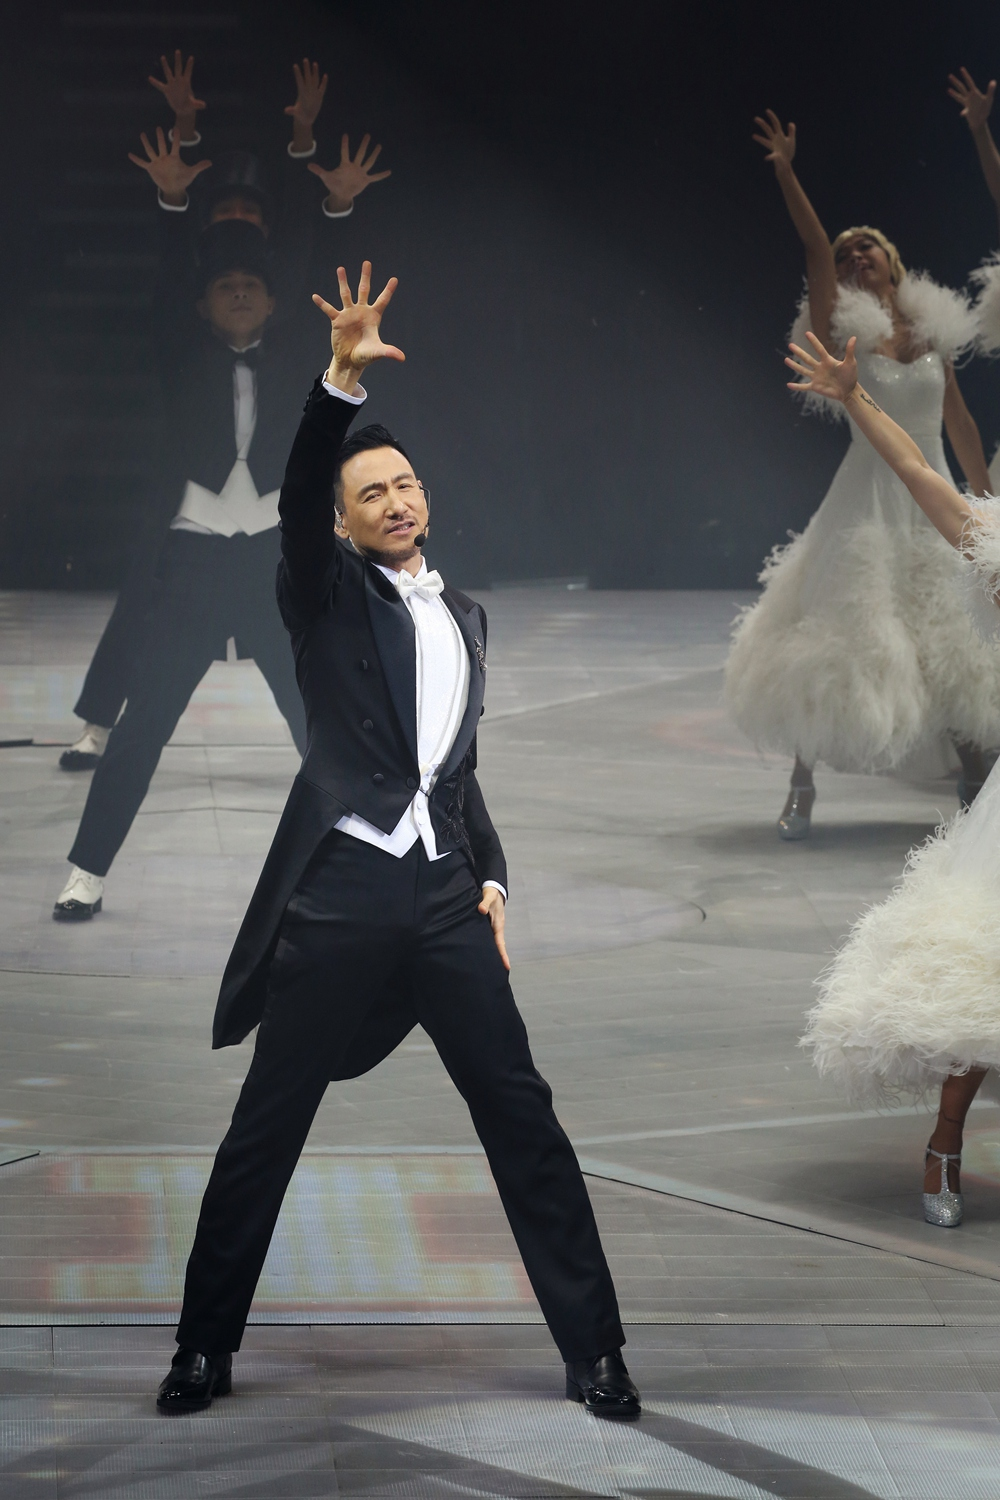 Music Legend Jacky Cheung to Perform at The Venetian Macao Cotai Arena in August